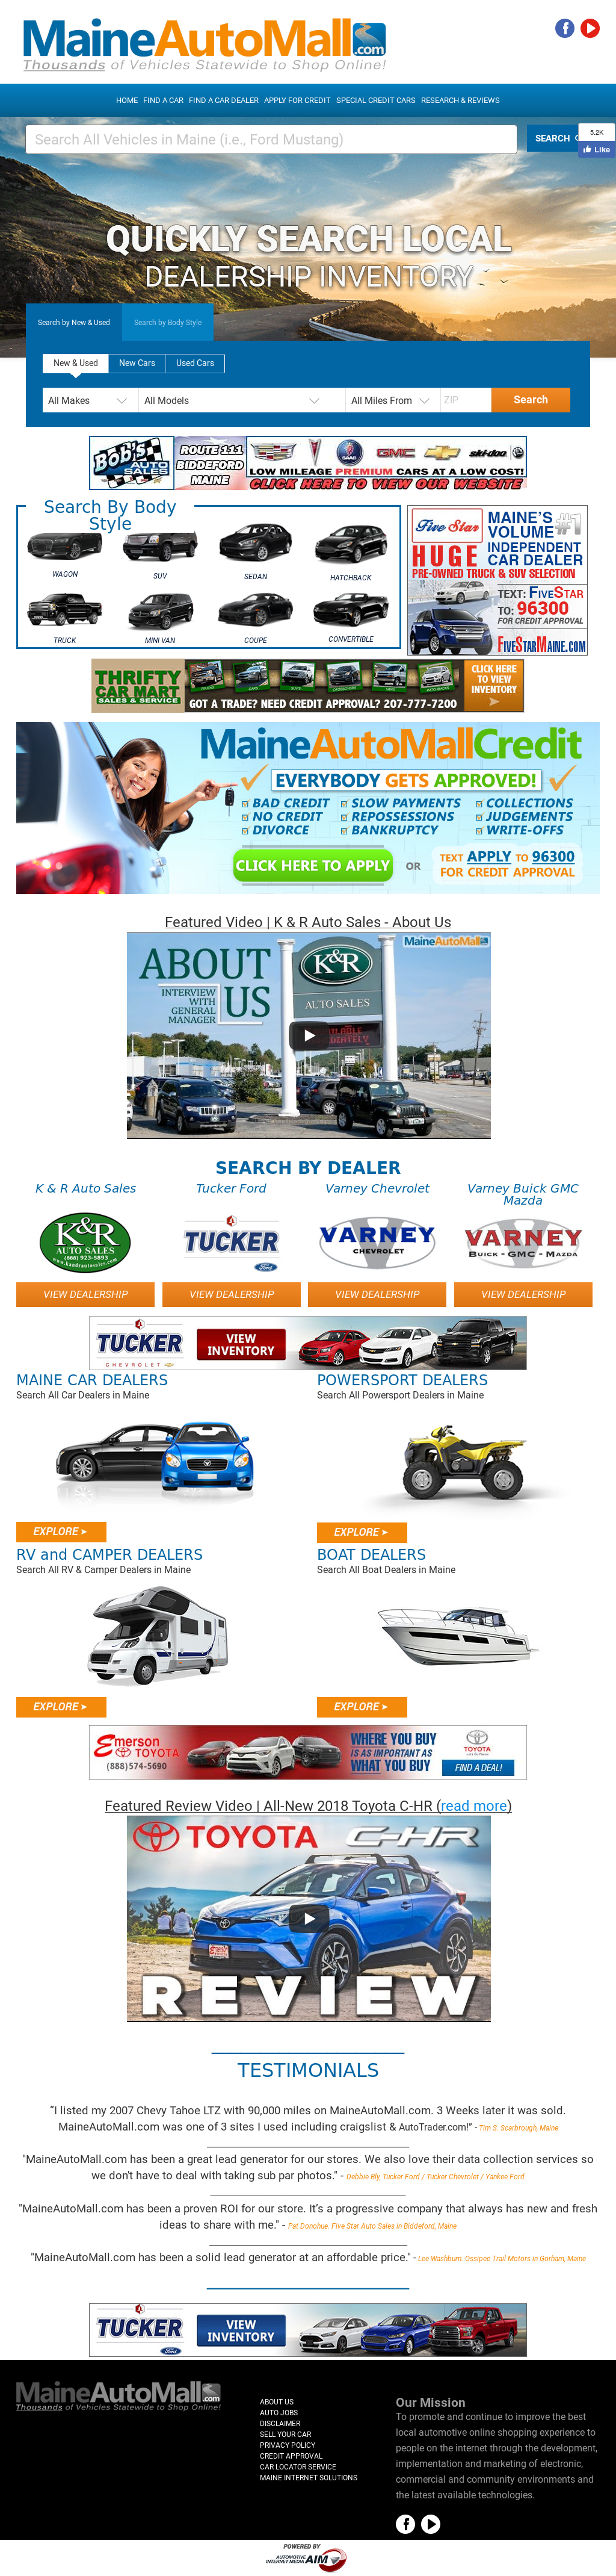 Maineautomall Competitors, Revenue and Employees - Owler